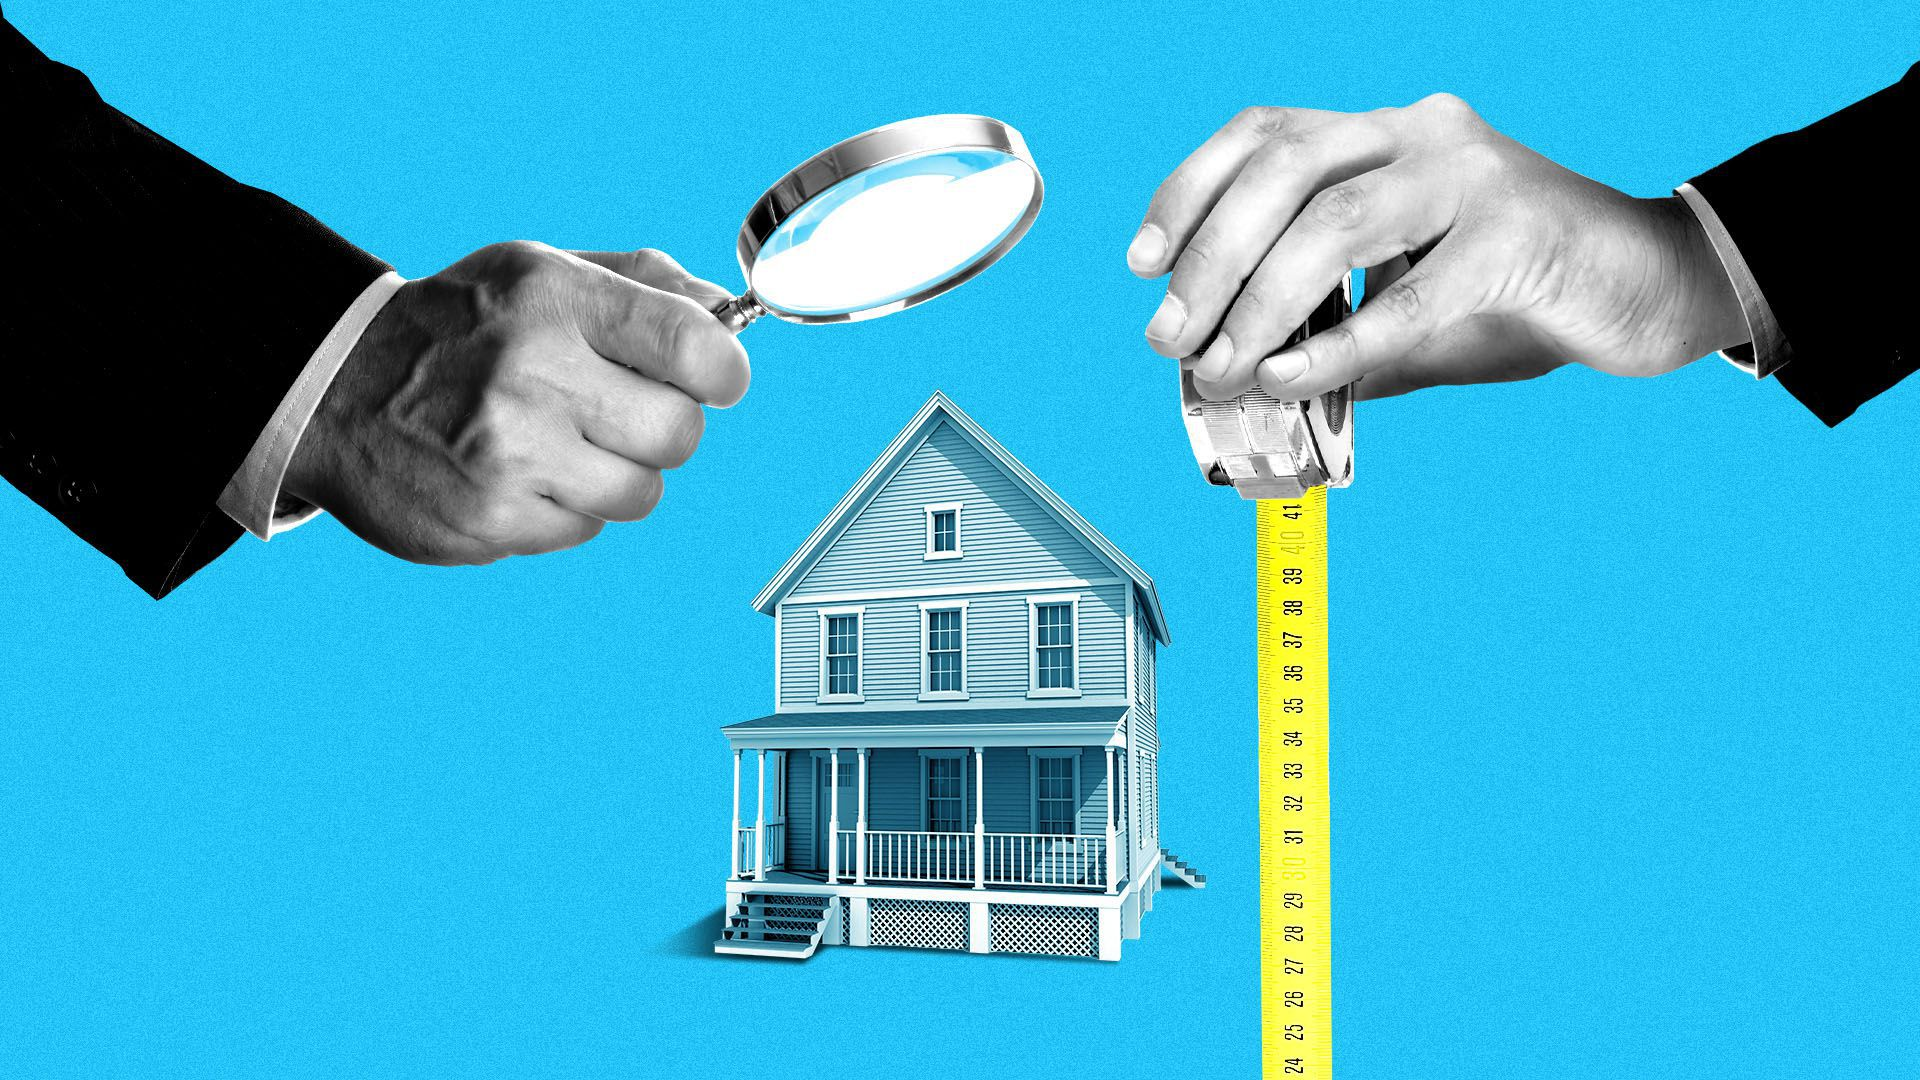 Illustration of a house being observed by a hand with a magnifying glass and another with a tape measure